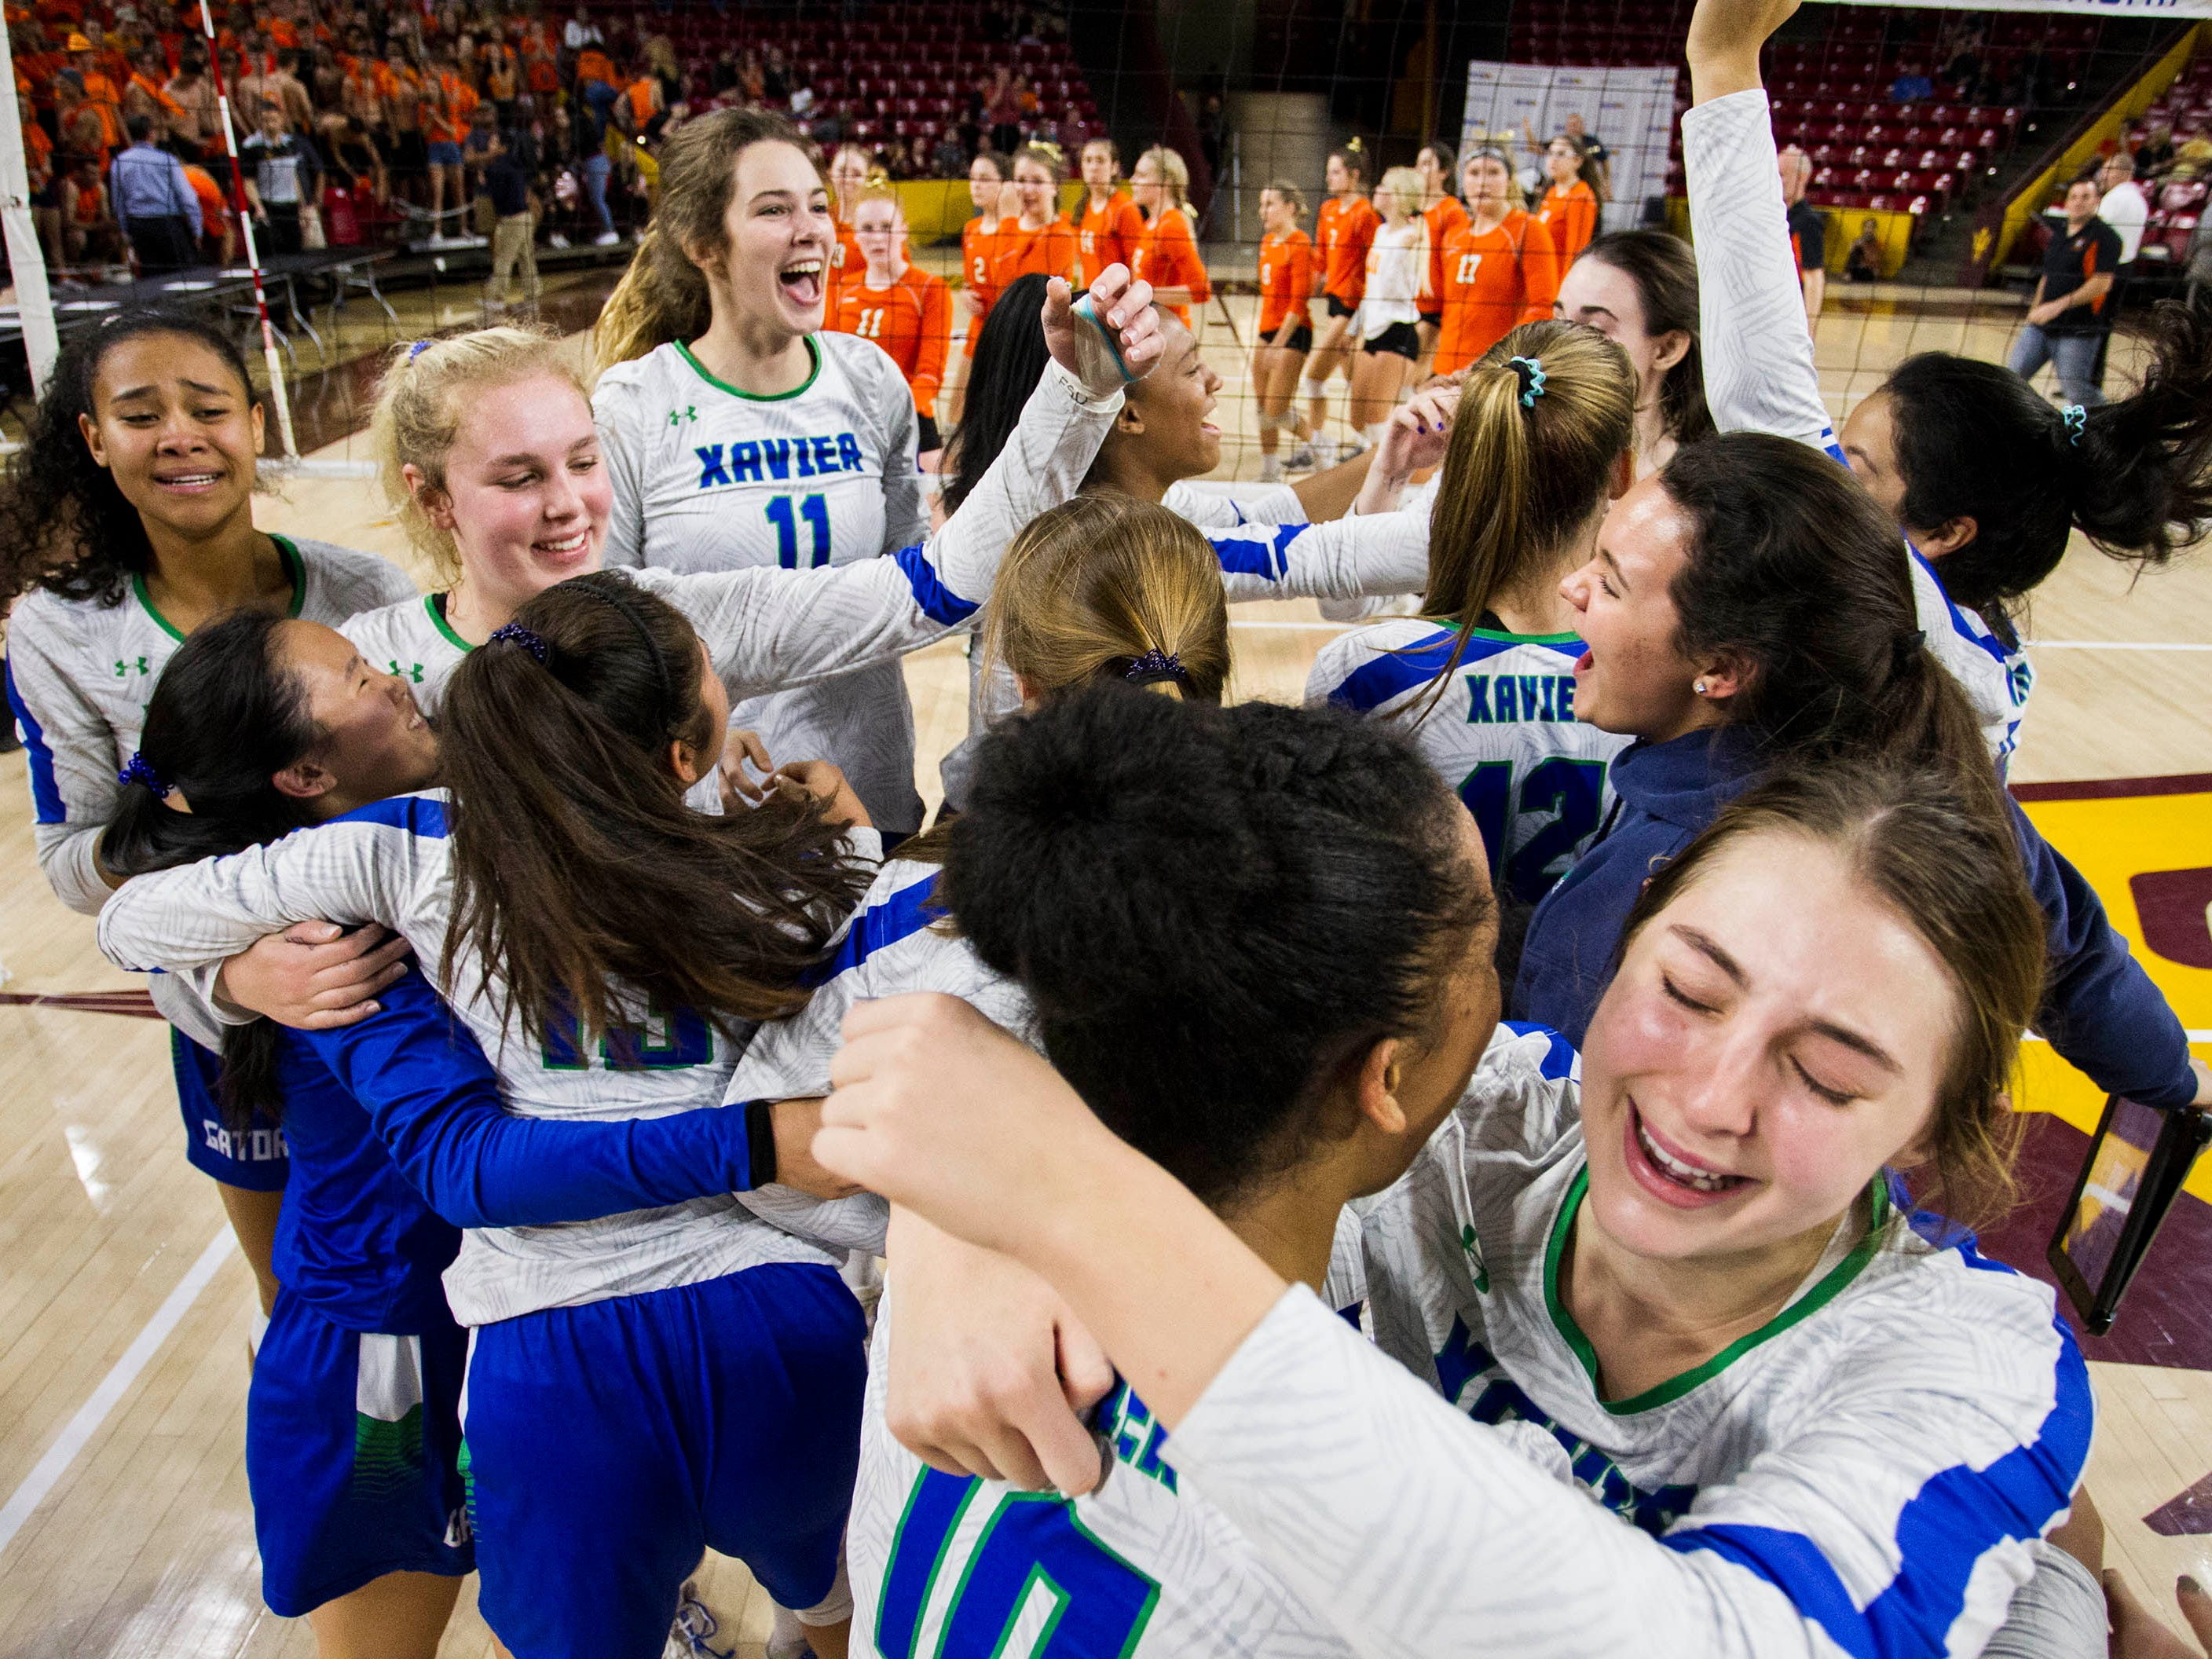 Xavier players celebrate their three set win over Corona del Sol in the girls 6A volleyball state championship at Wells Fargo Arena in Tempe, Wednesday, Nov. 7, 2018.